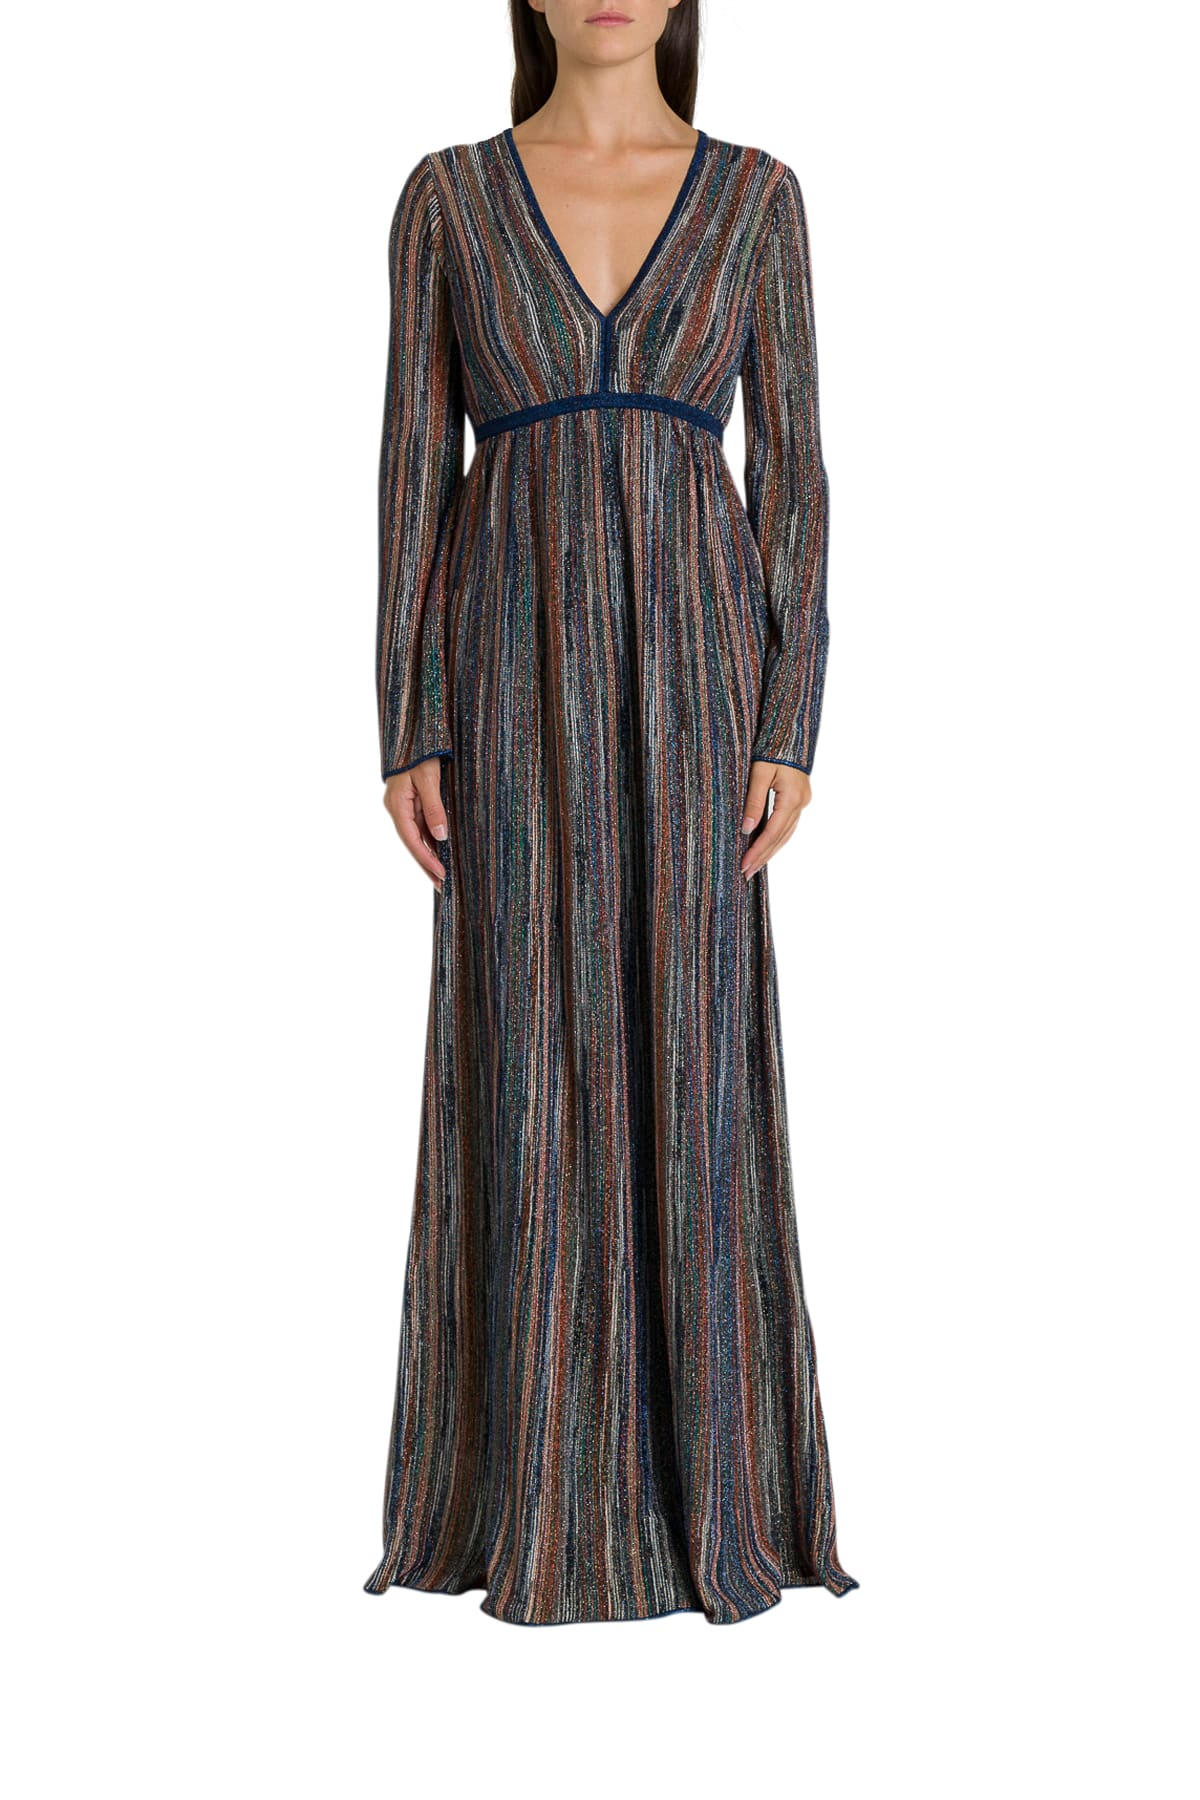 M Missoni Striped Lurex Knit Long Dress